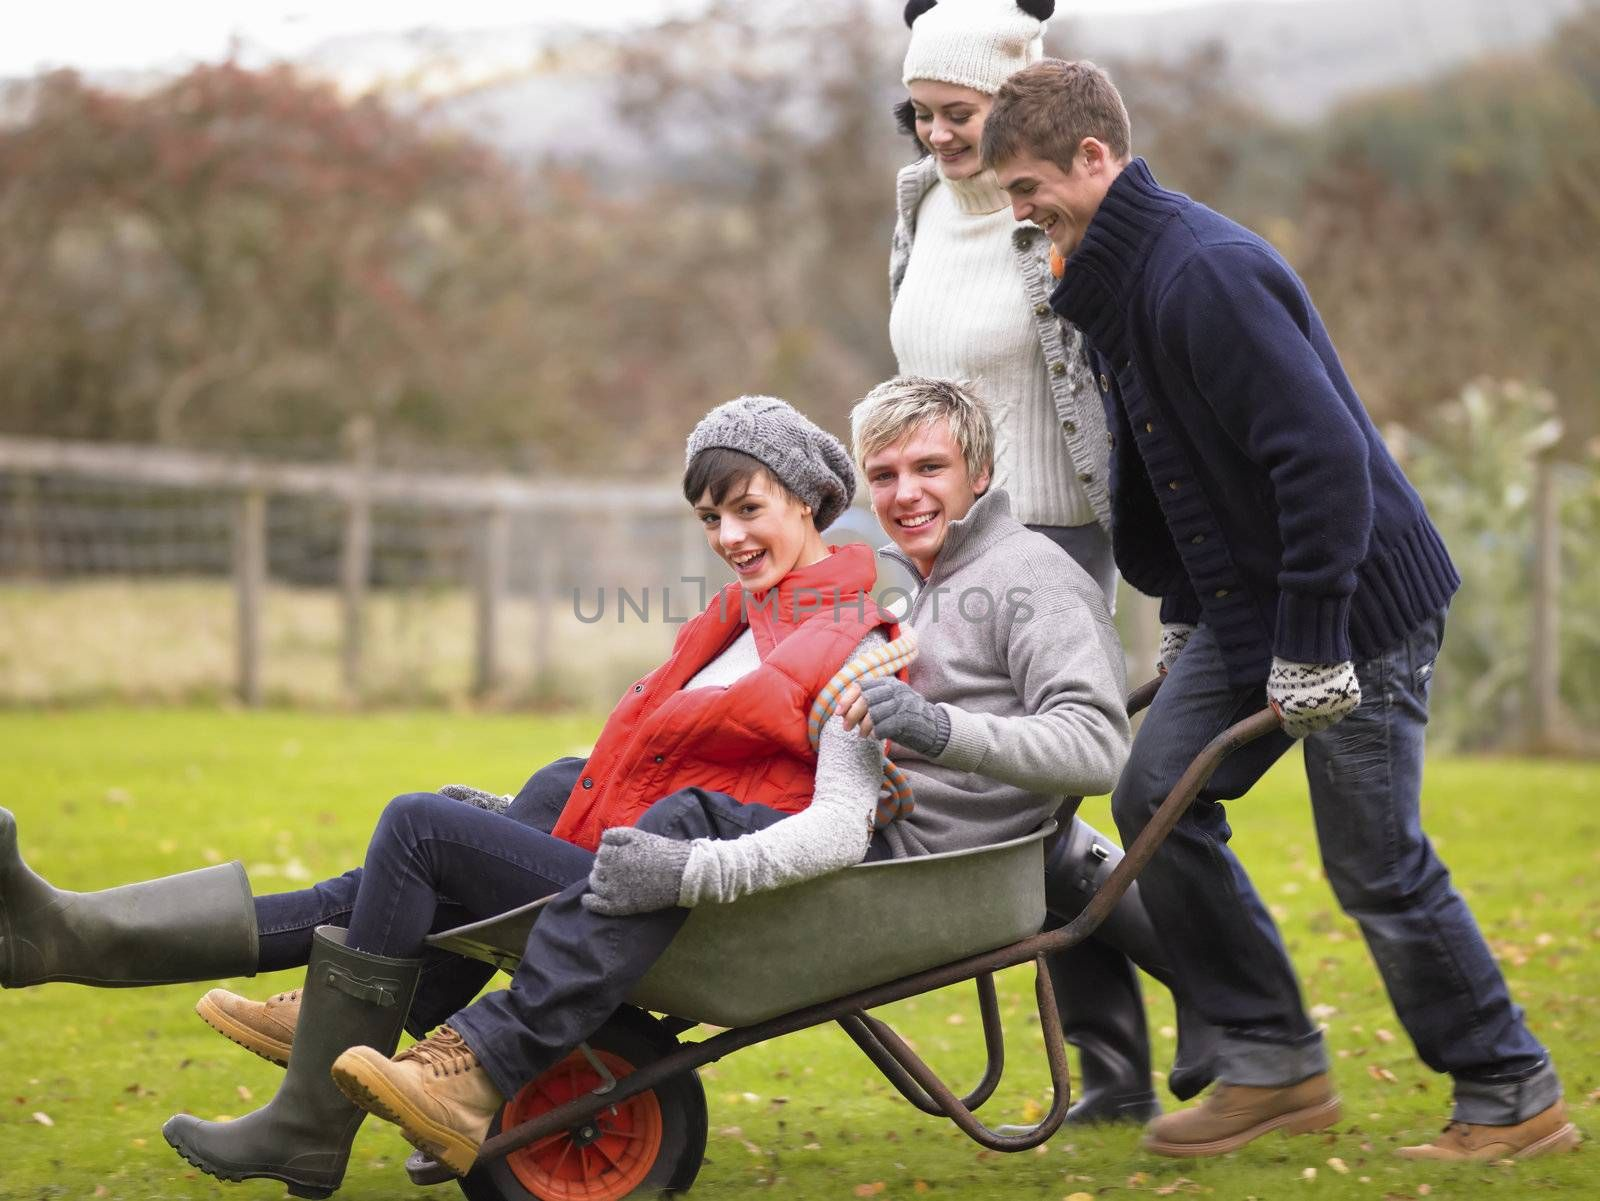 Two young couples playing in wheelbarrow